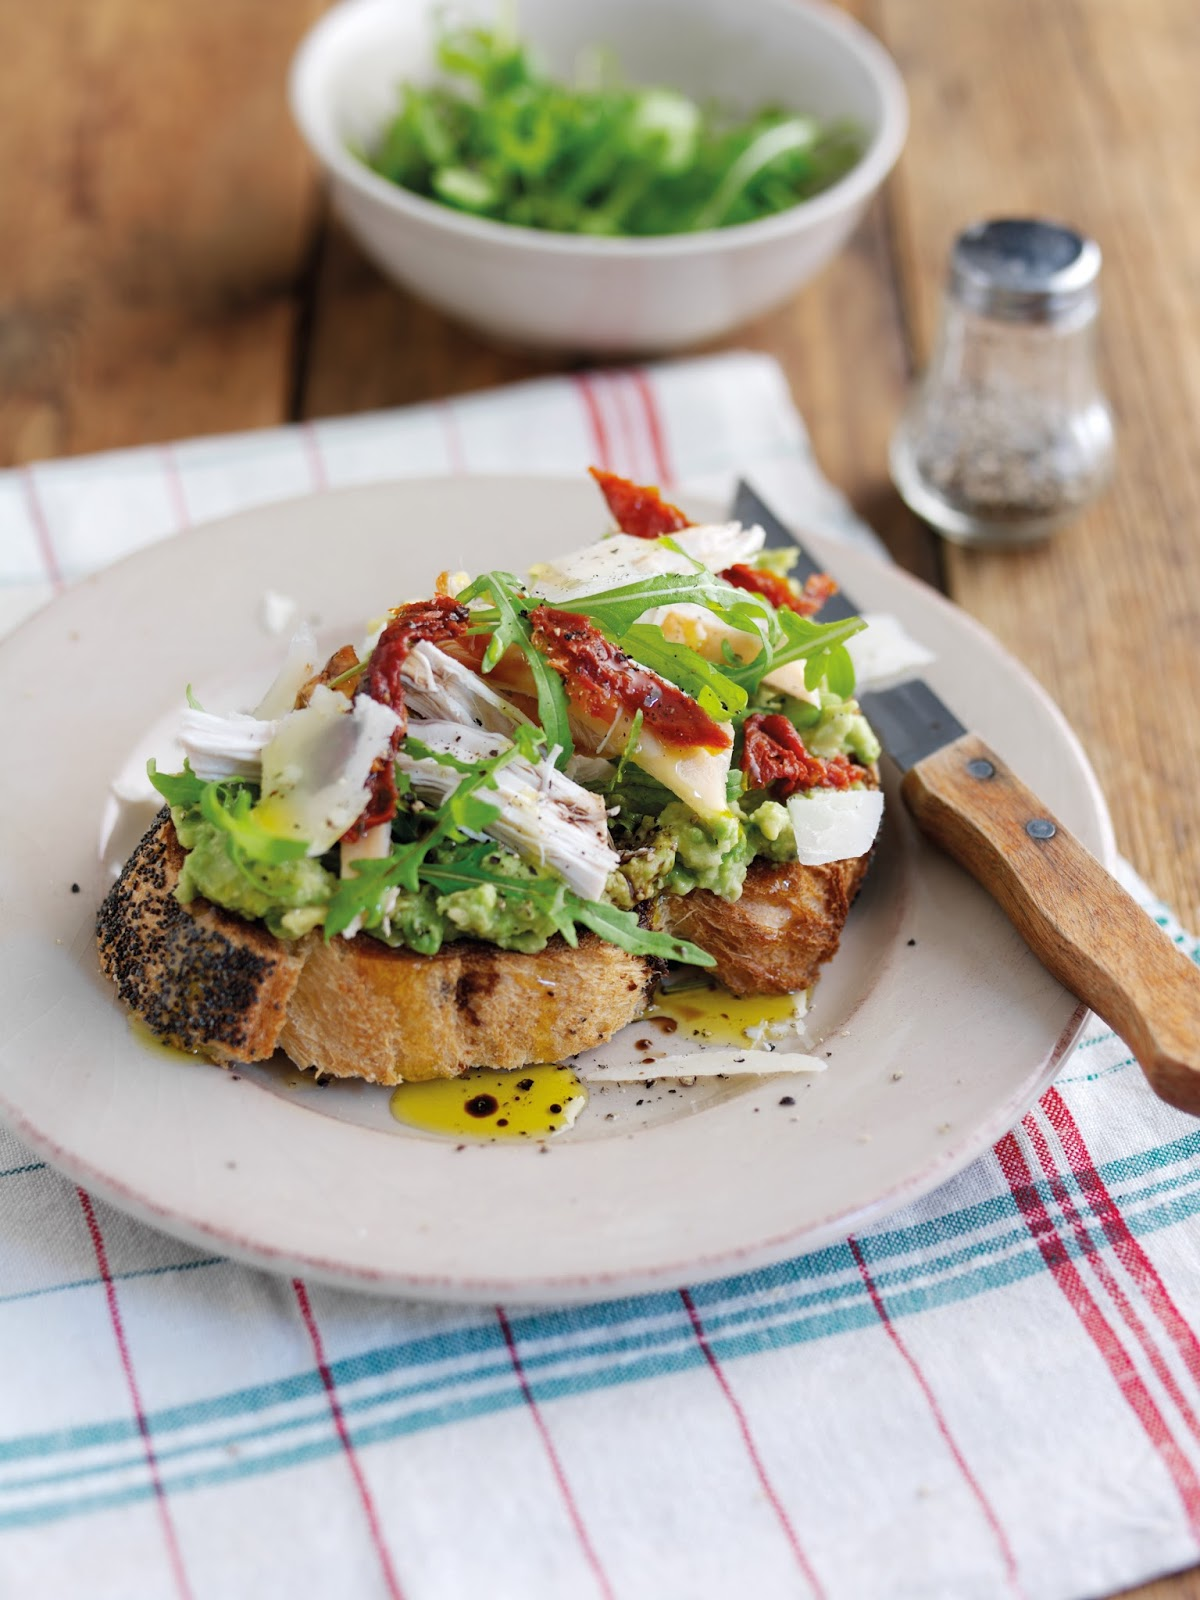 Avocado Brunch Spread To Try Out This Lunchtime